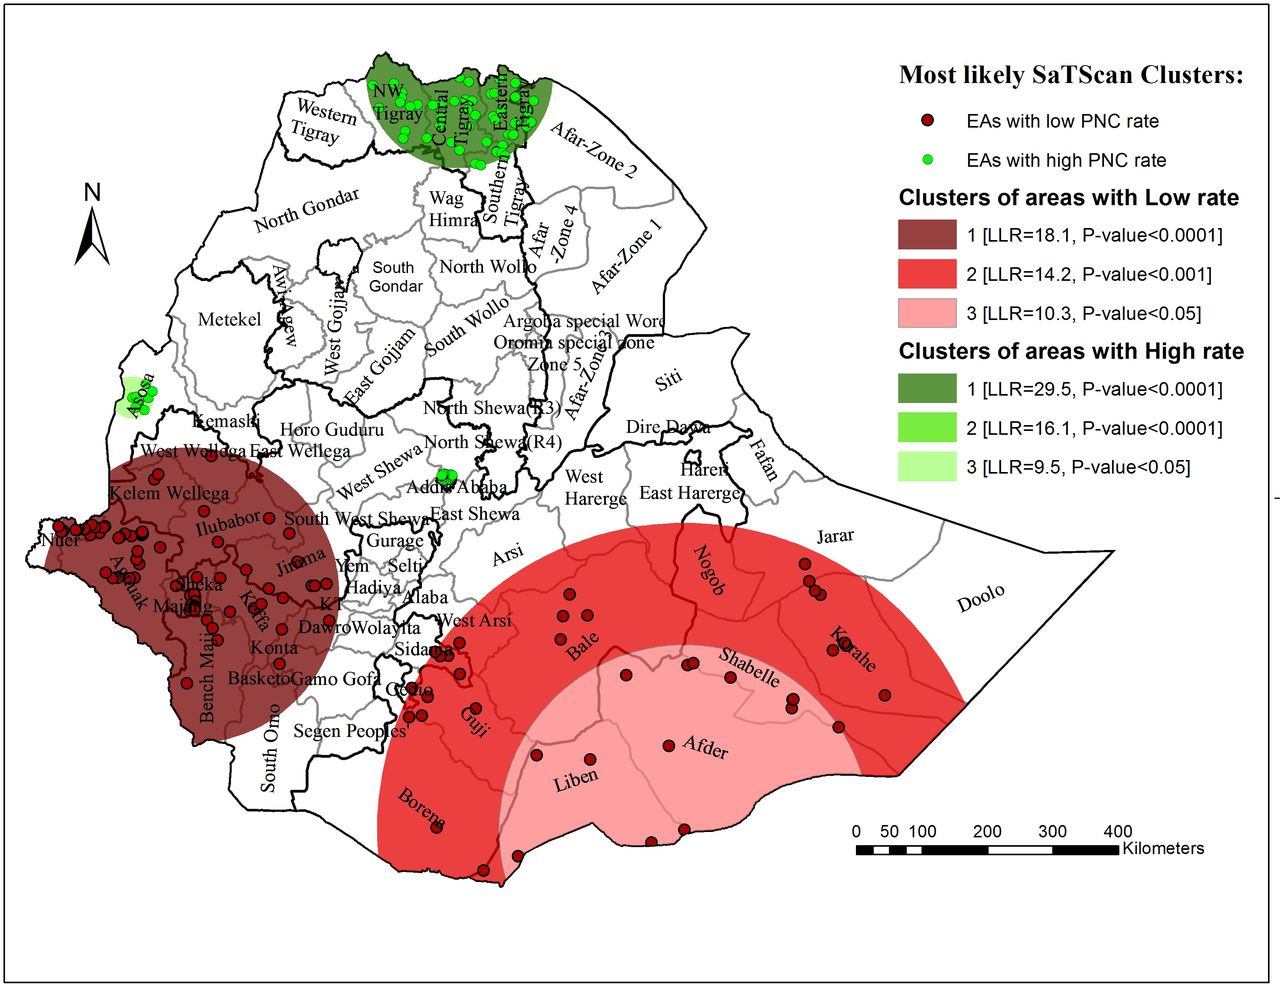 Spatial patterns and determinants of postnatal care use in Ethiopia